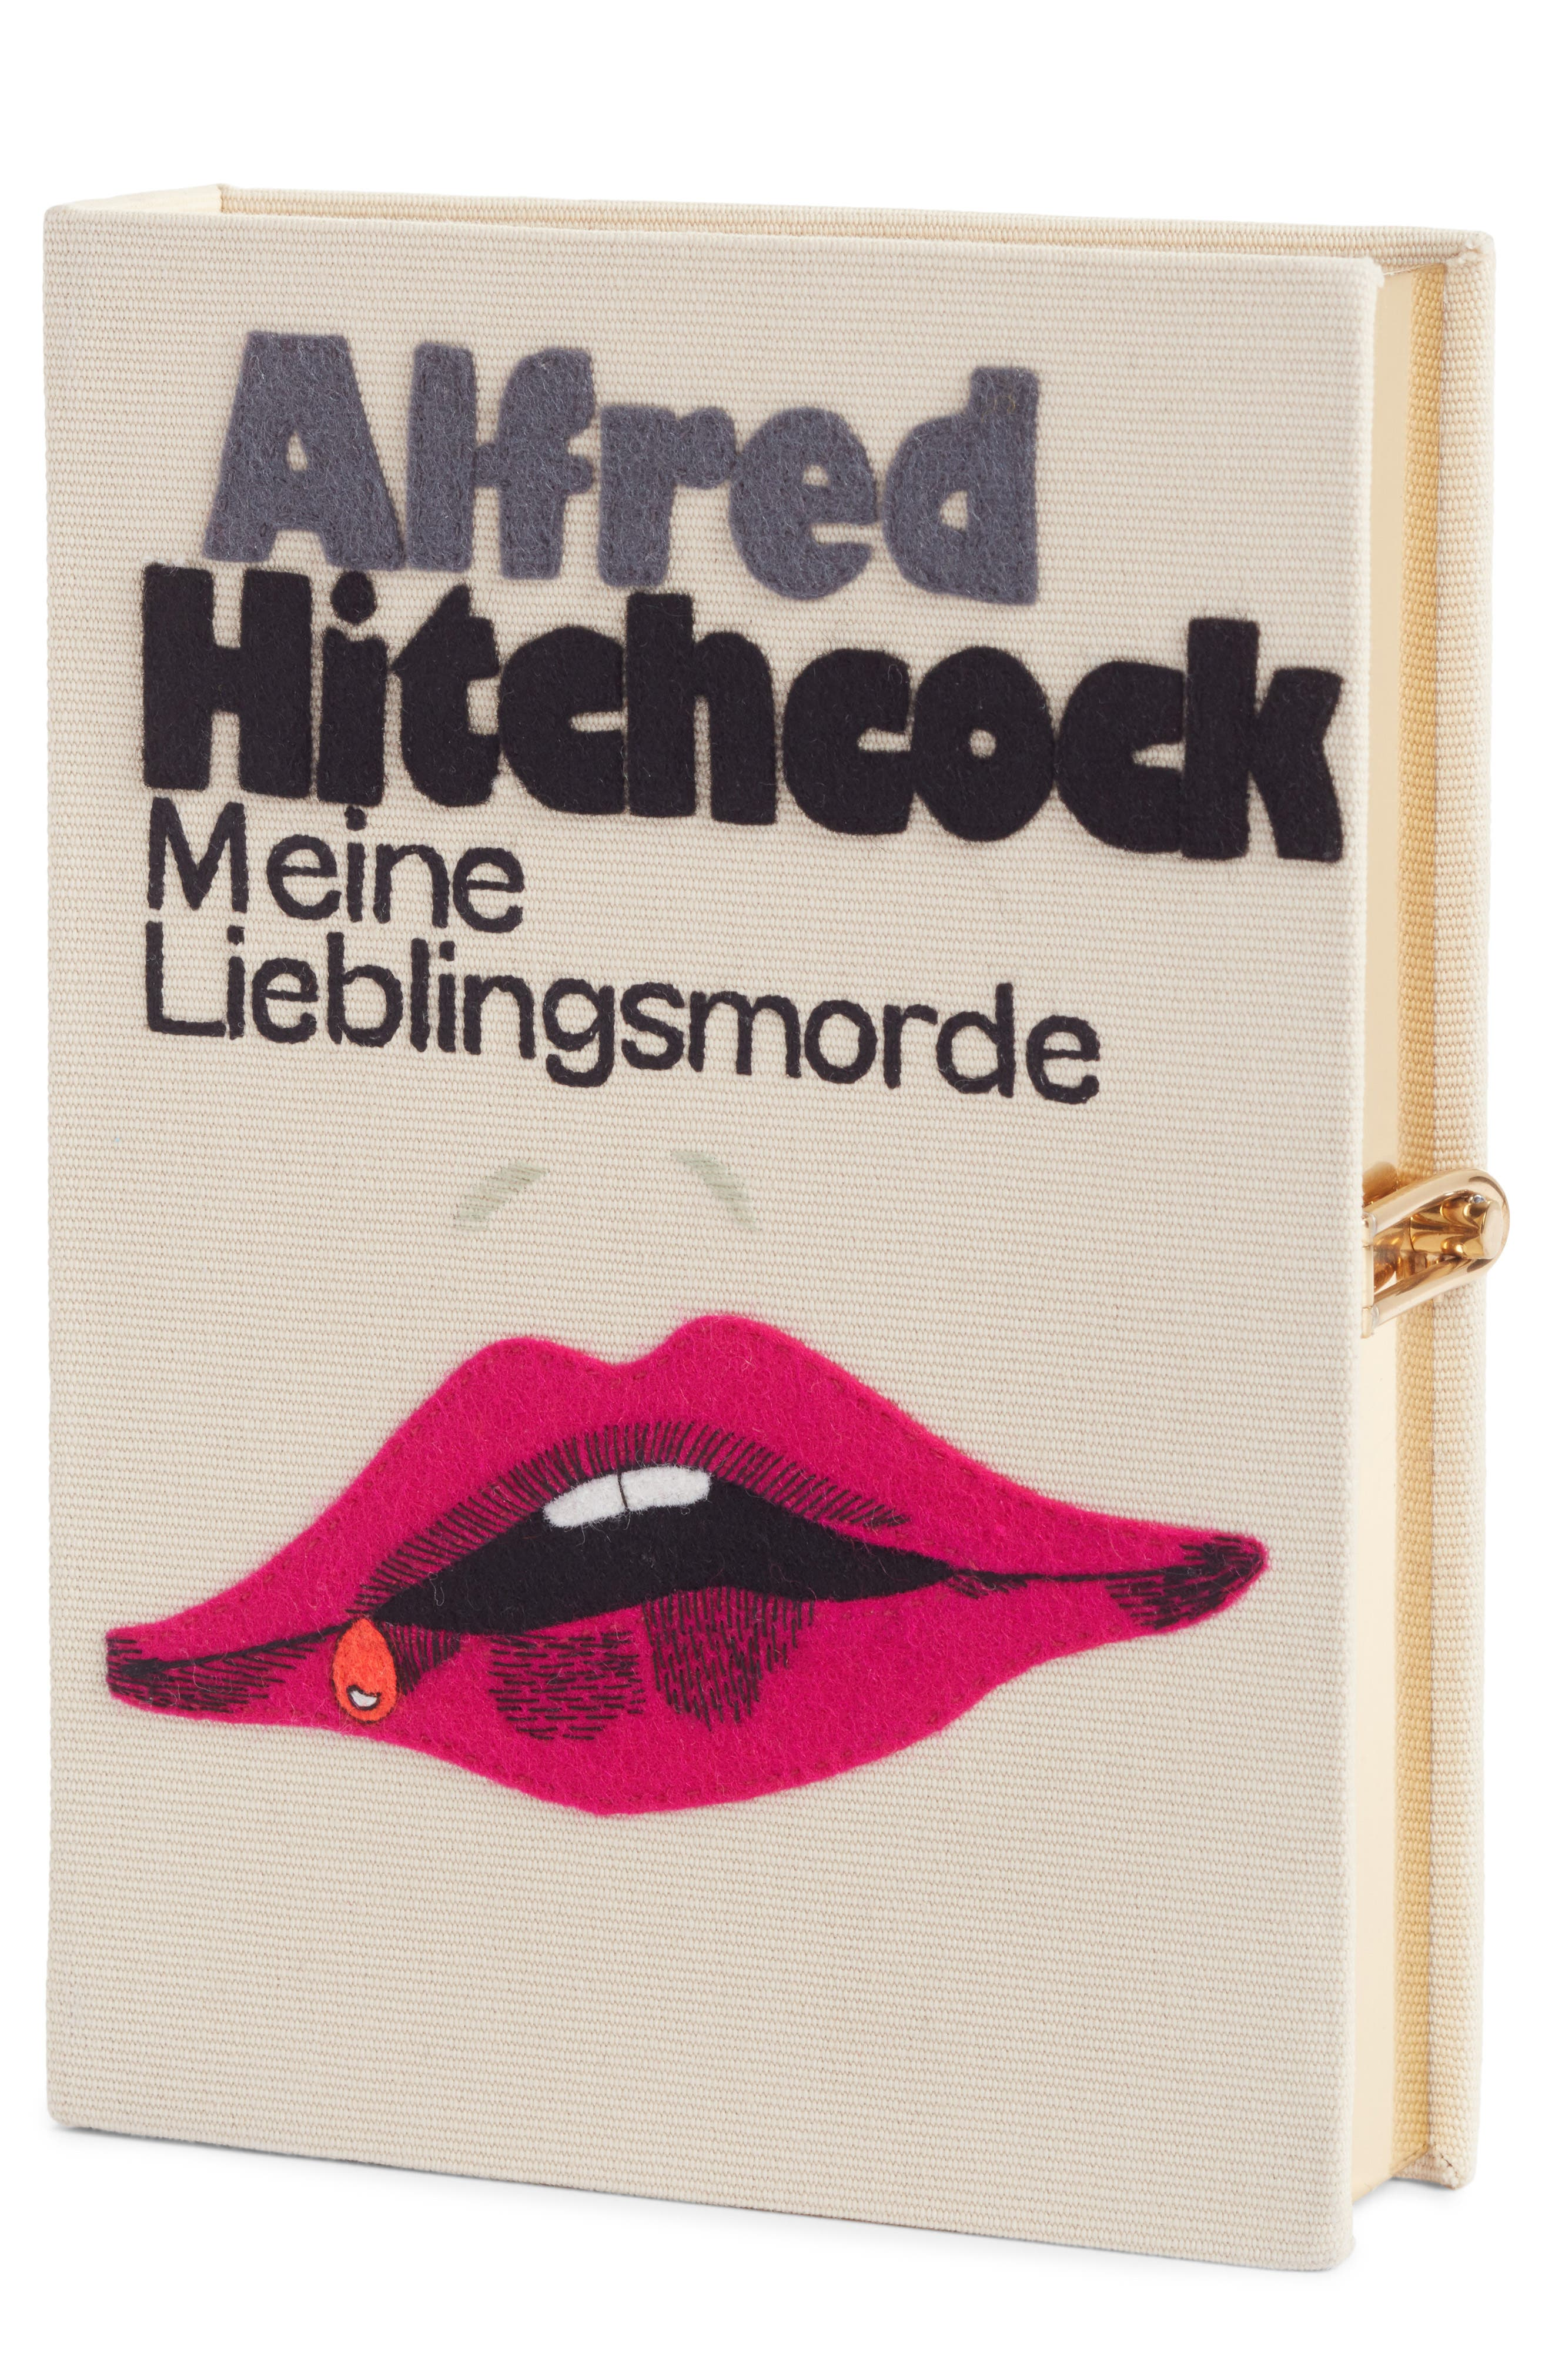 Alternate Image 1 Selected - Olympia Le-Tan Hitchcock - 'Meine Lieblingsmorde' Book Clutch